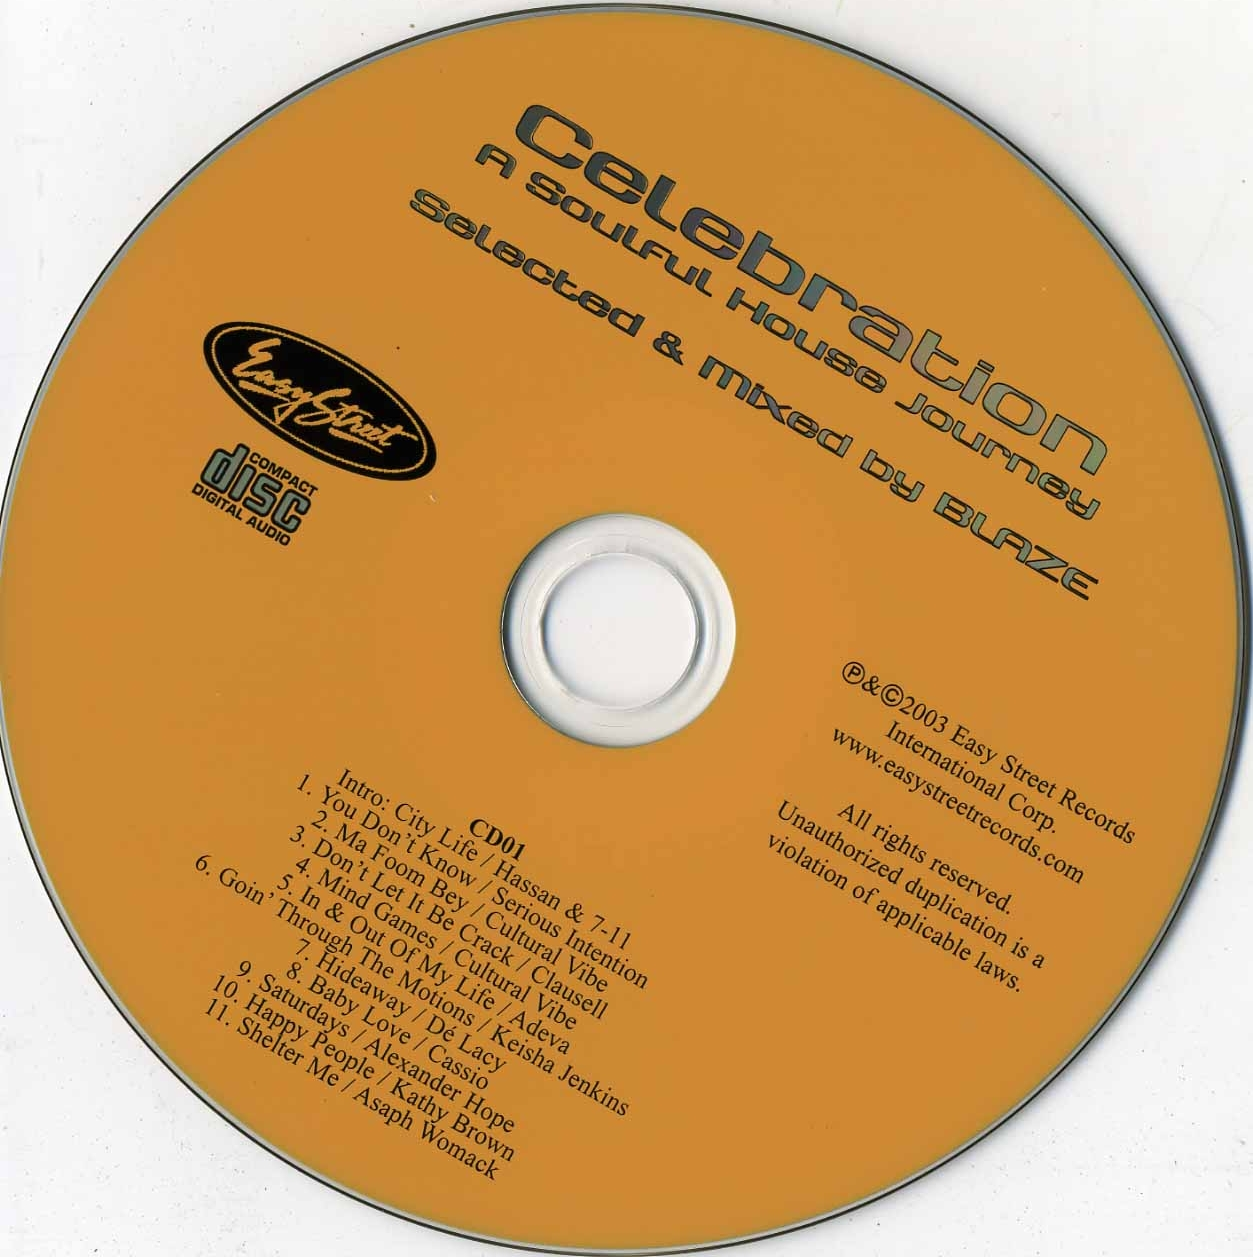 Easy Street Dance Classics - Celebration A Soulful House Journey - CD (1-2)